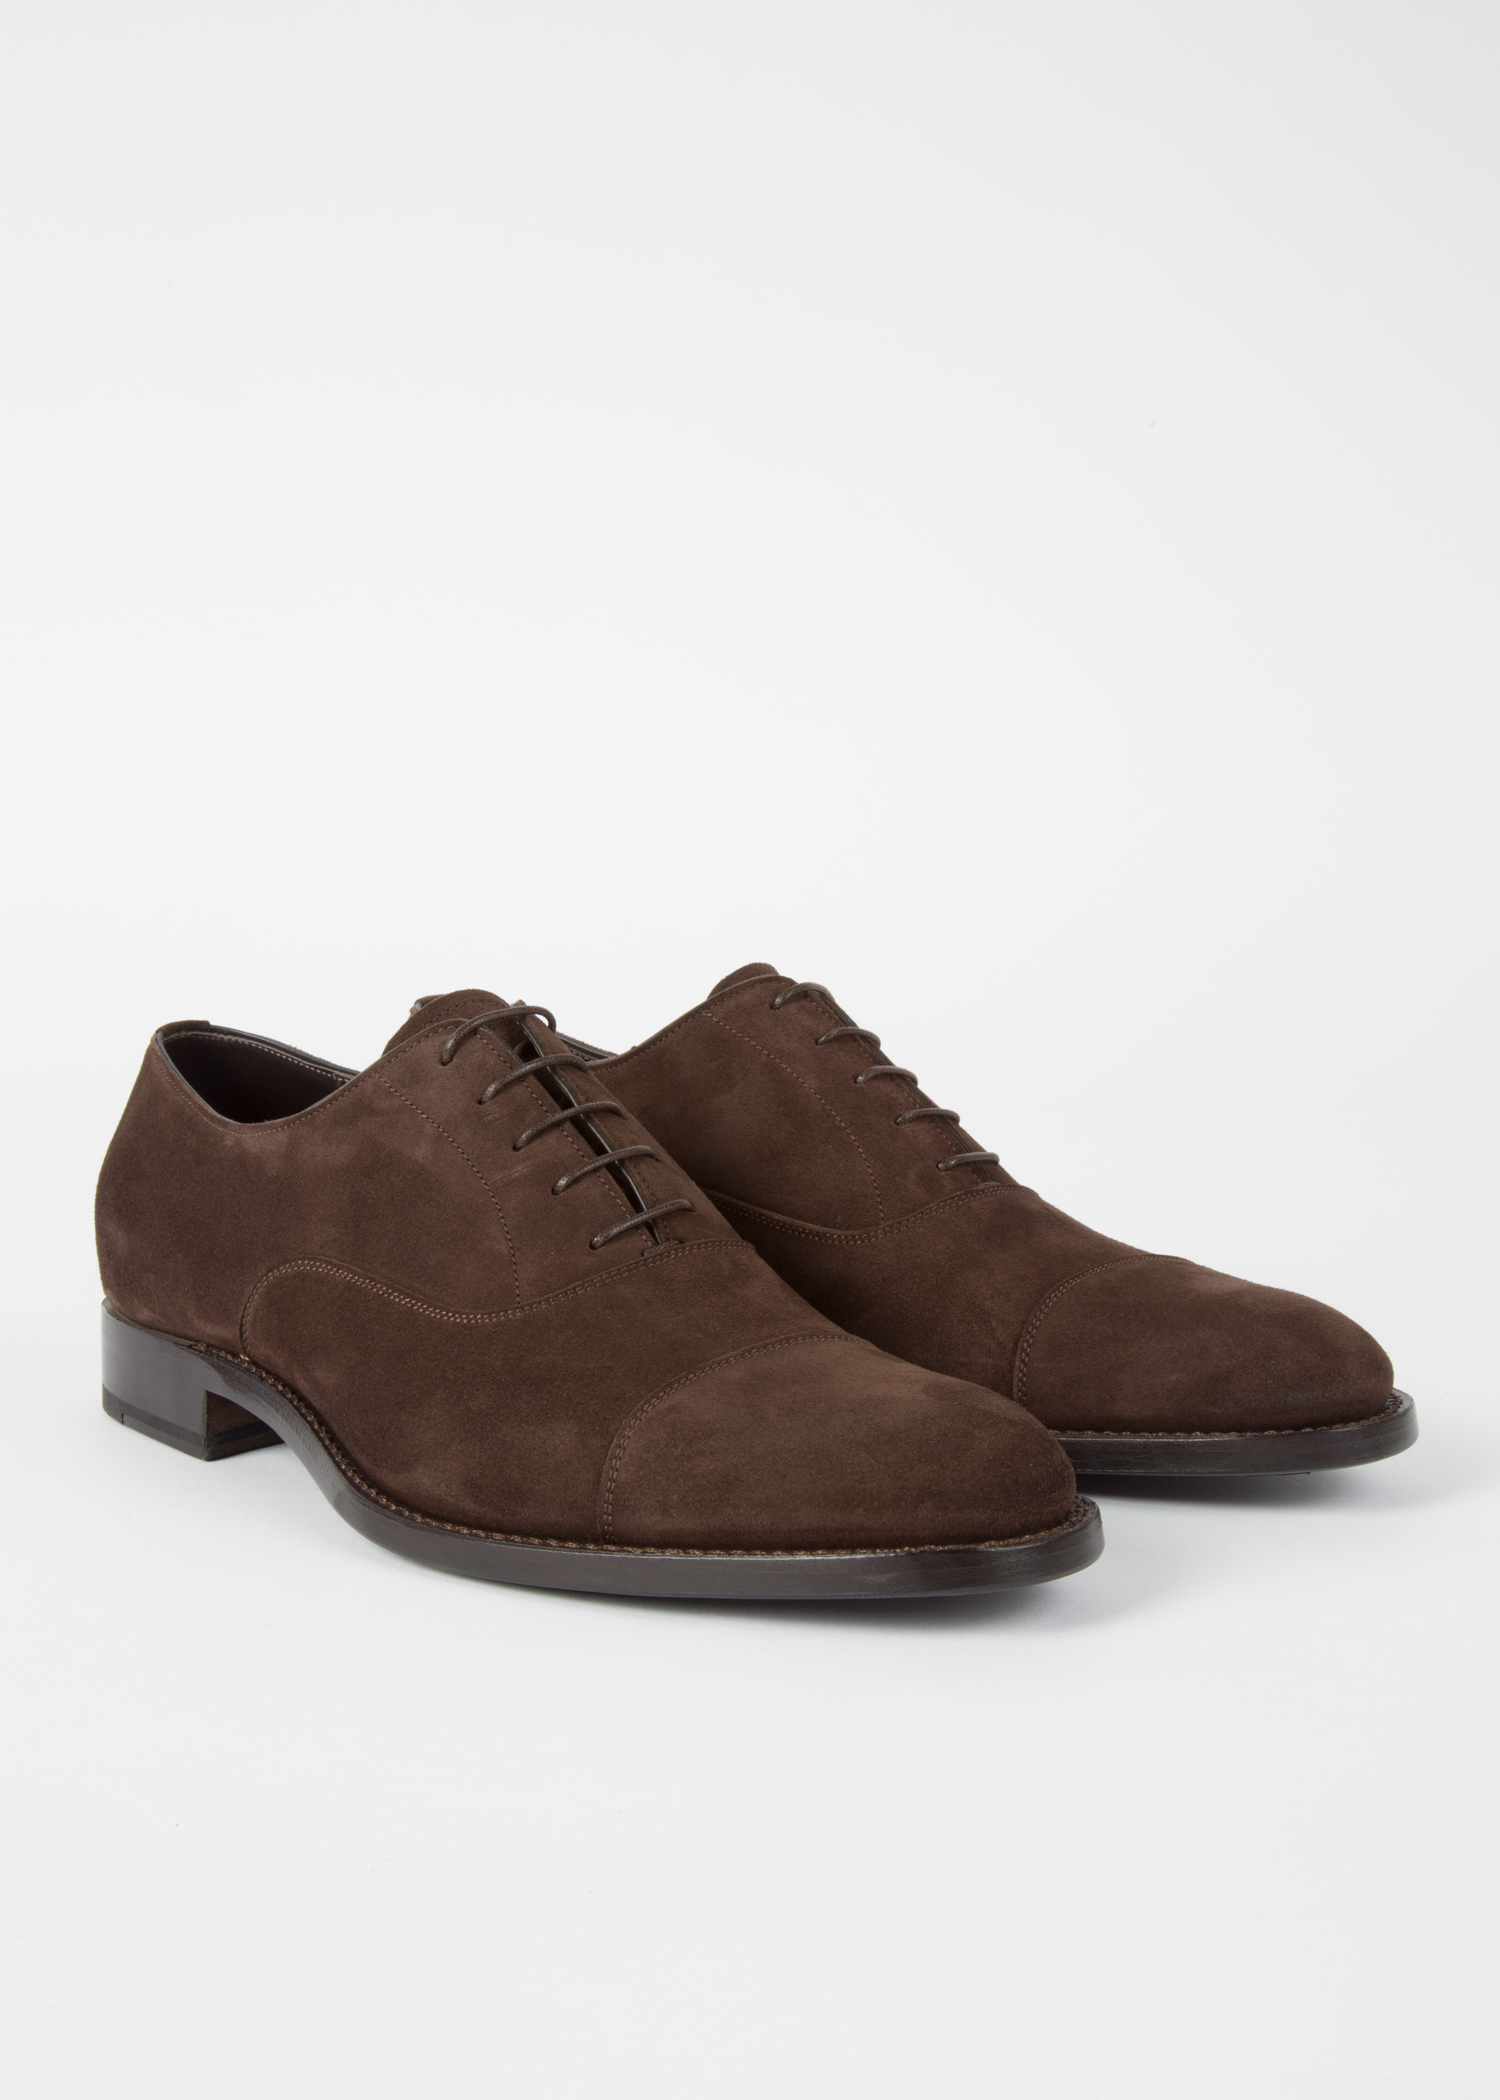 dae617bf5f341 Men's Dark Brown Suede 'Carlisle' Oxford Shoes - Paul Smith